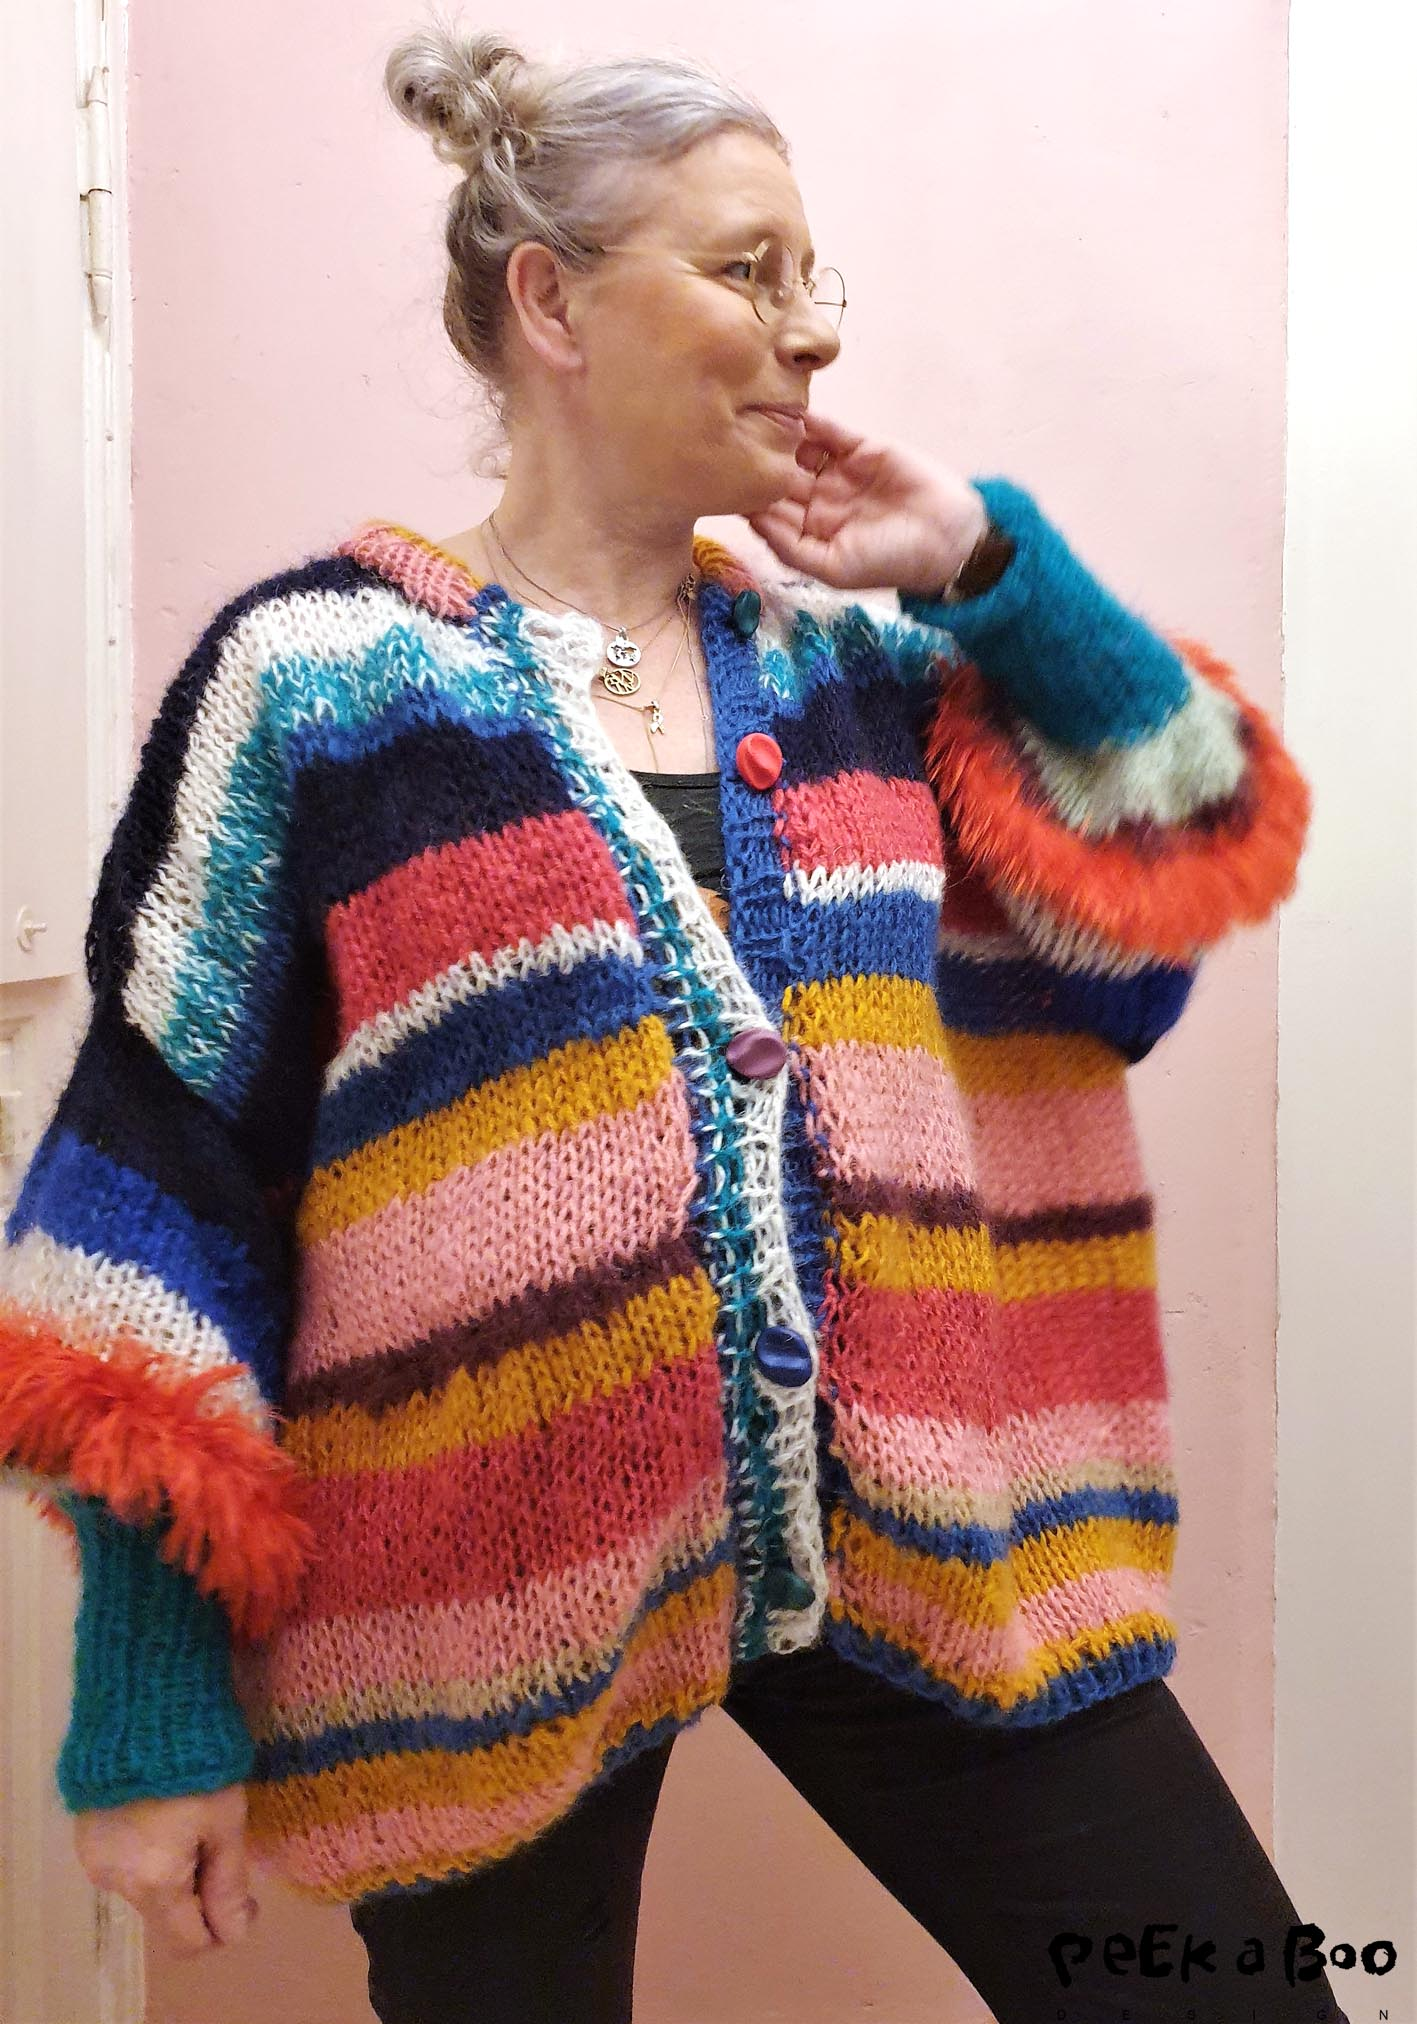 The over-size cardigan made of leftover yarns and with secondhand buttons from the 80'ies.